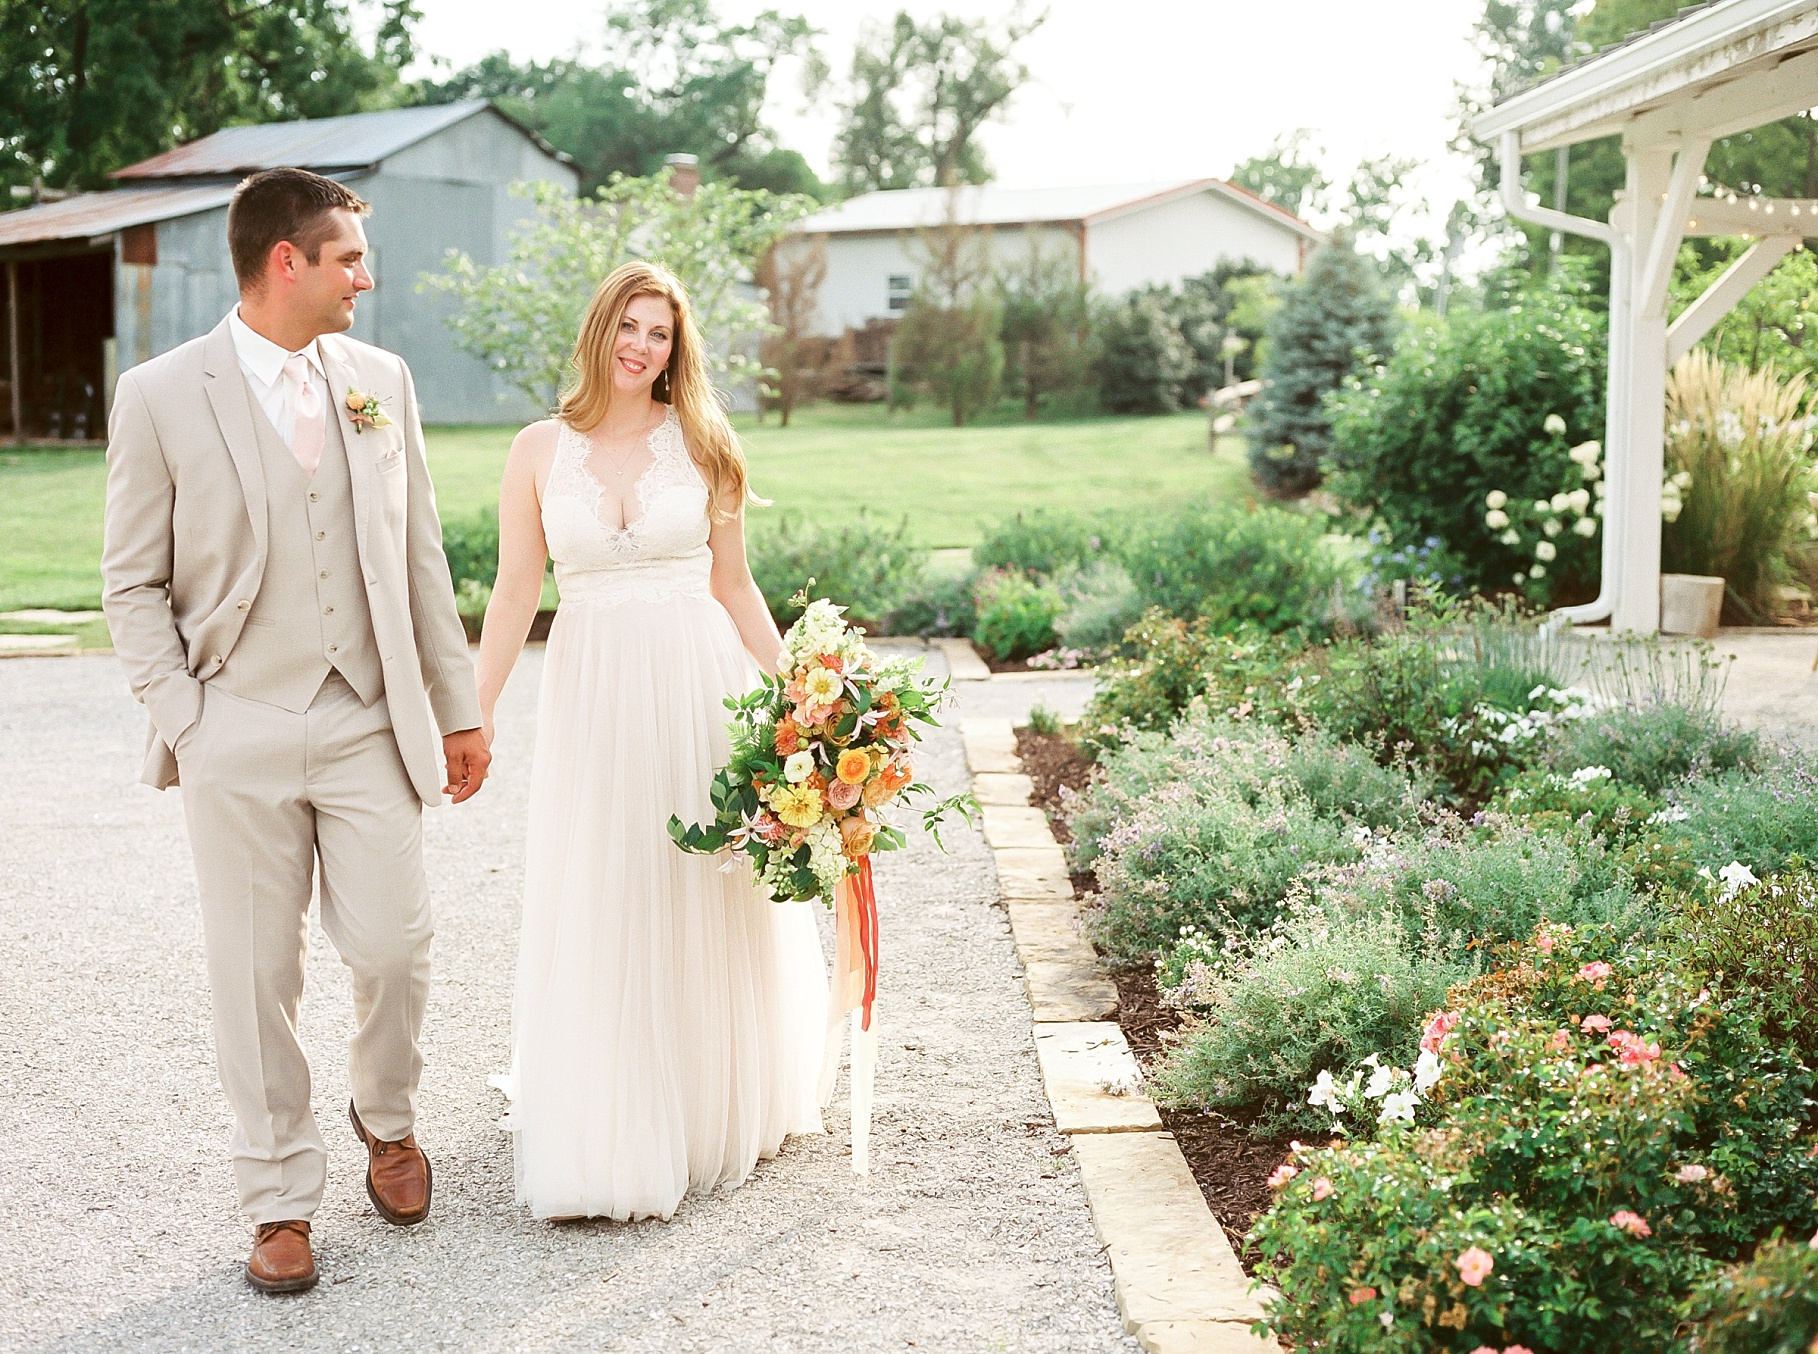 Late Summer Wedding With Pastel Toned Soiree at Blue Bell Farm by Kelsi Kliethermes Photography Best Columbia Missouri Wedding Photographer_0011.jpg